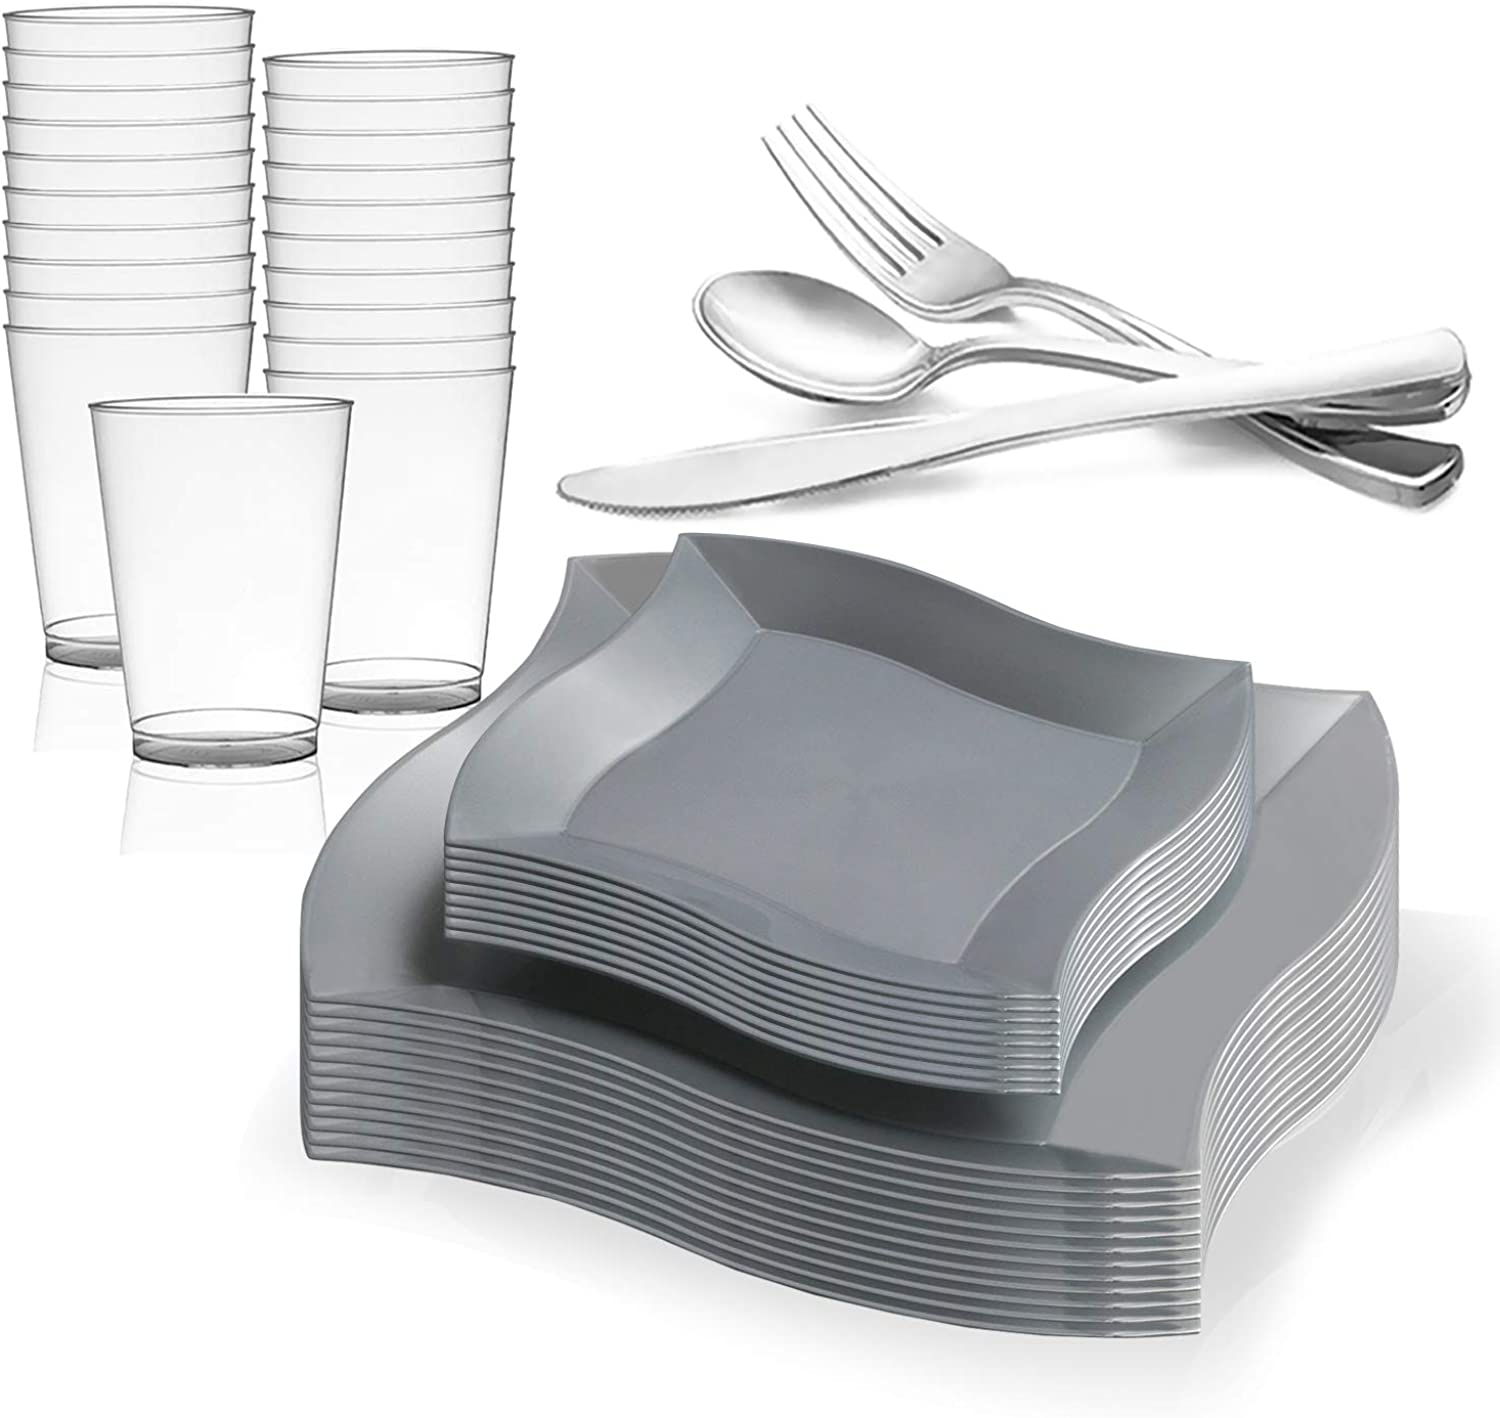 Elegant Disposable Plastic Dinnerware Set for 60 Guests - Includes Fancy Wave Silver Dinner Plates, Dessert Salad Plates, Silverware Silver Cutlery & Cups For Wedding, Birthday Party & Other Occasions